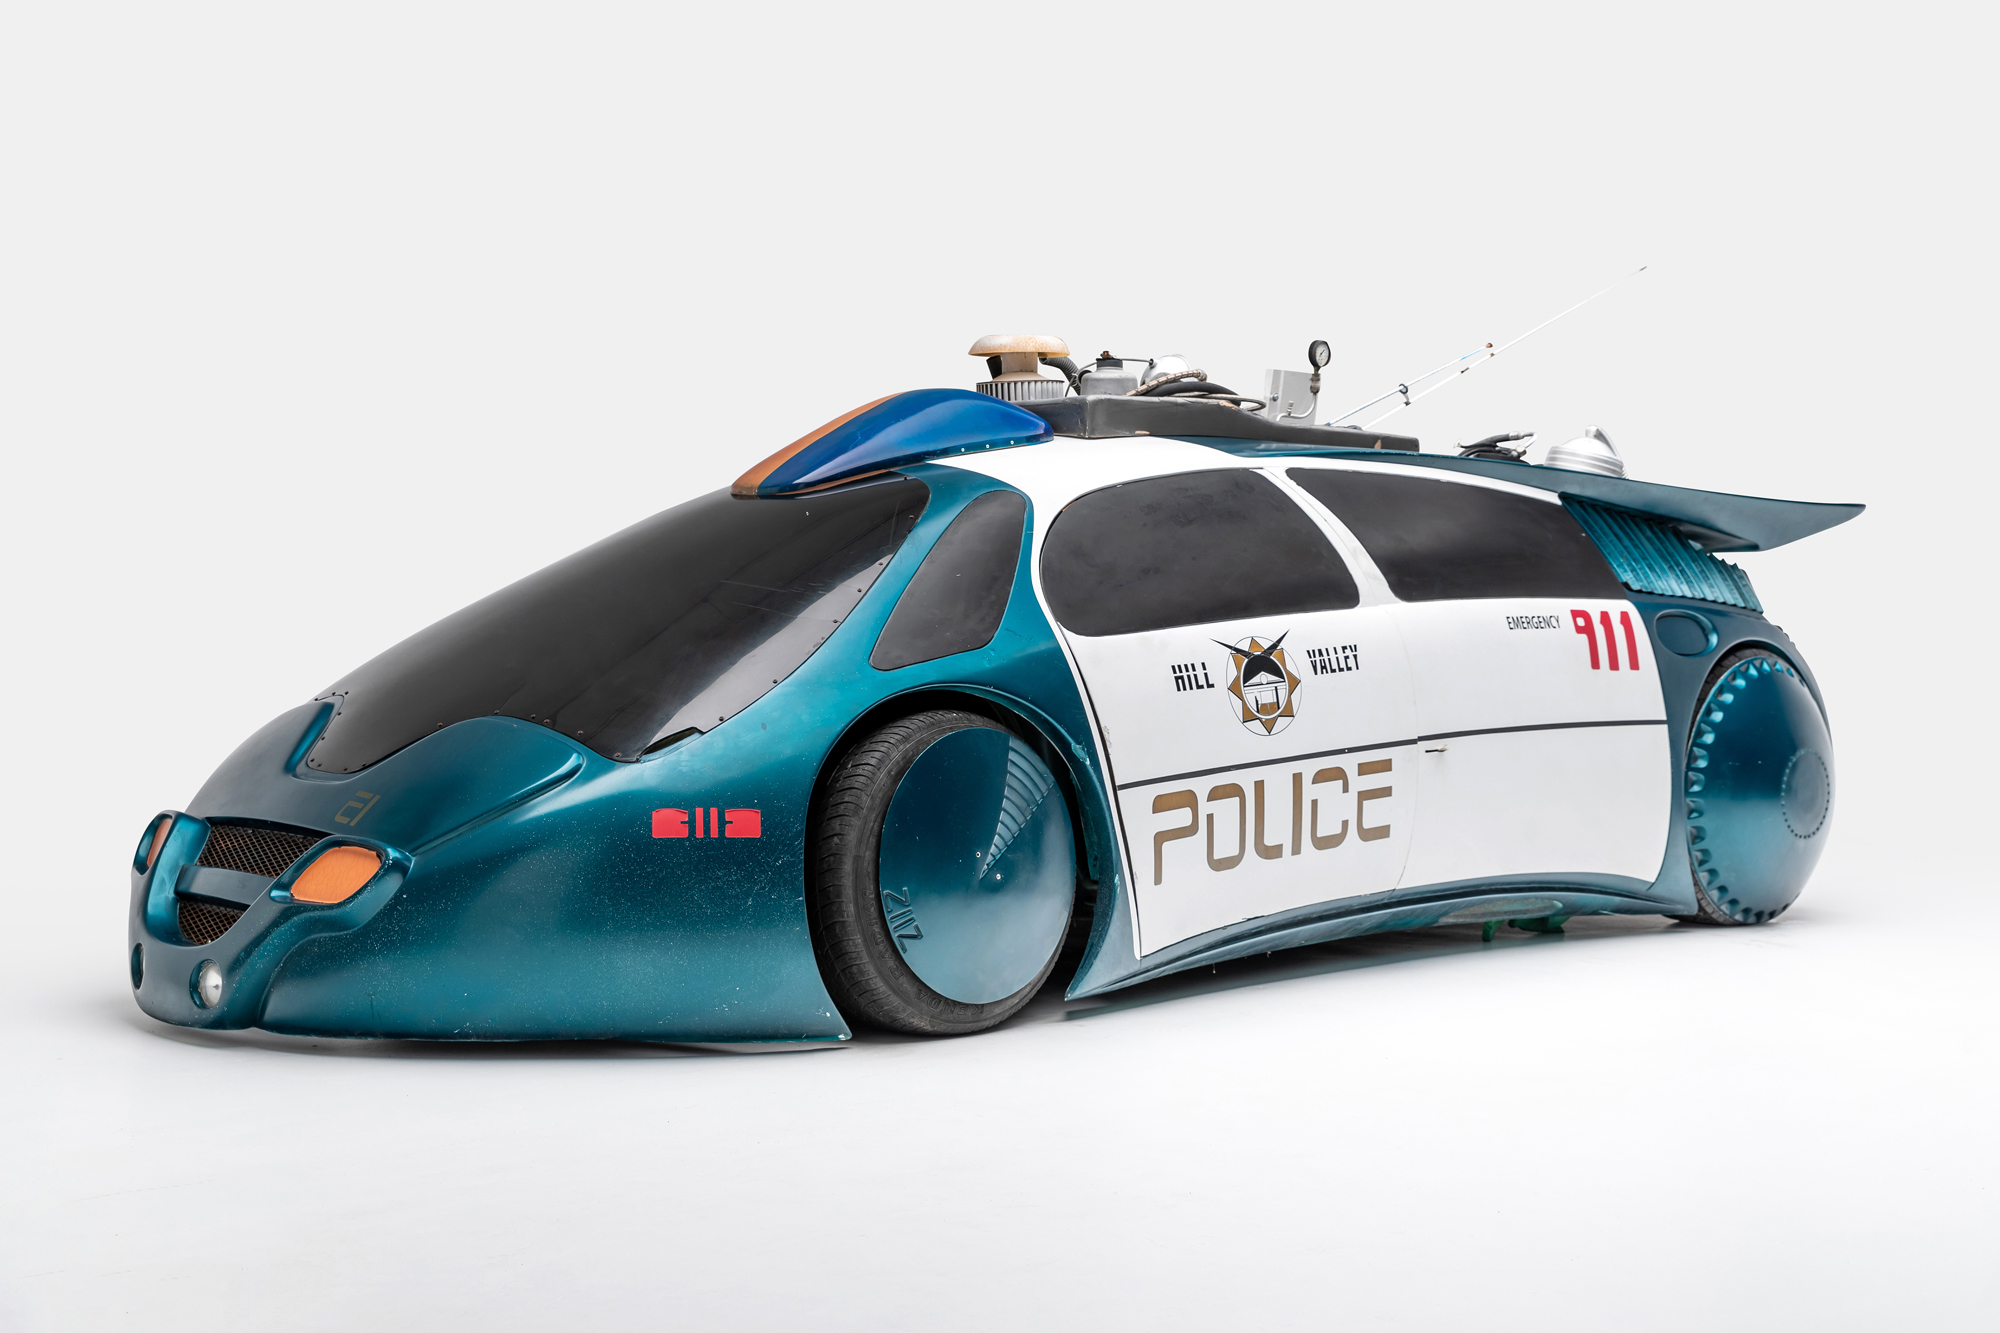 Police Car (BTTF 2)sci-fi movie and TV cars on display at LA's Petersen Museum